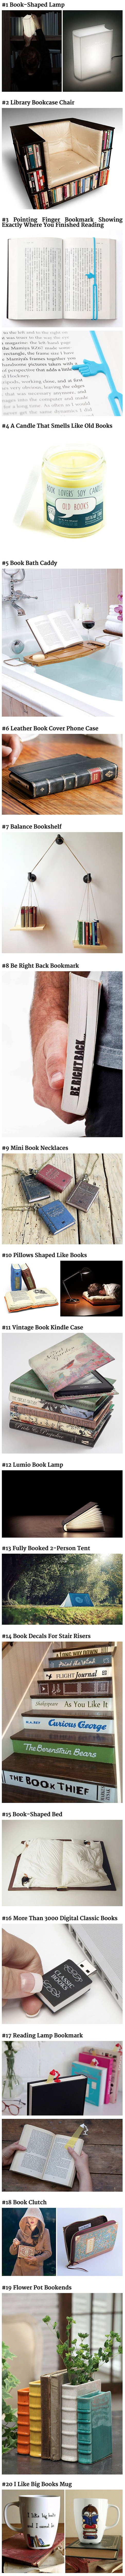 Here are some cool items that book fanatics would love.